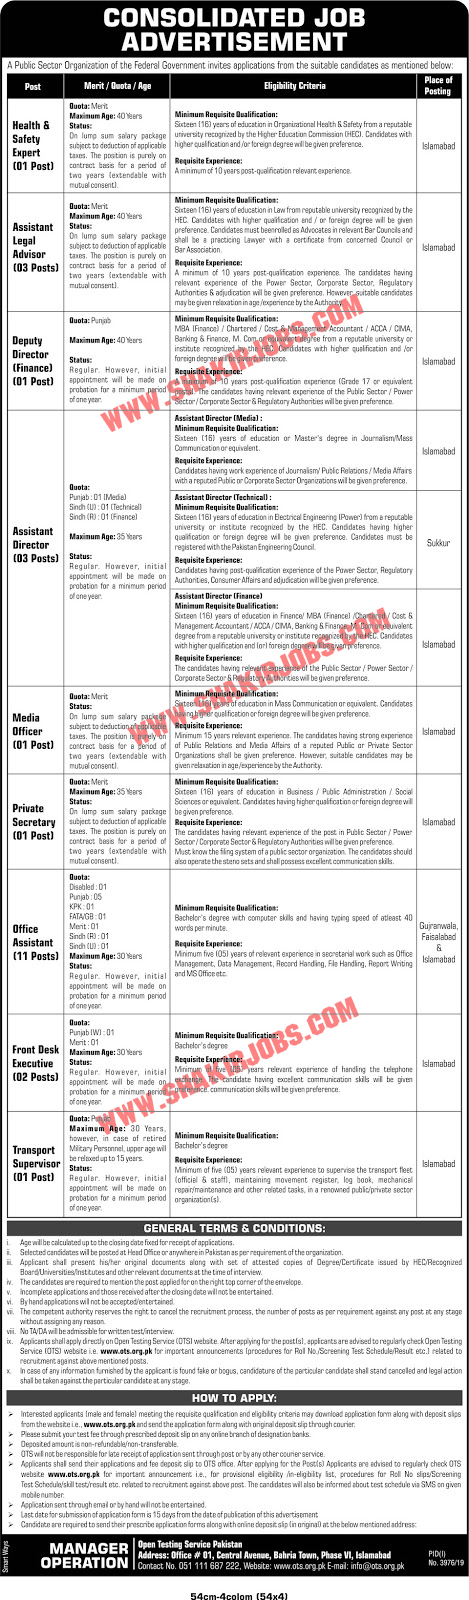 Pakistan Atomic Energy Commission PAEC Jobs via OTS 2020